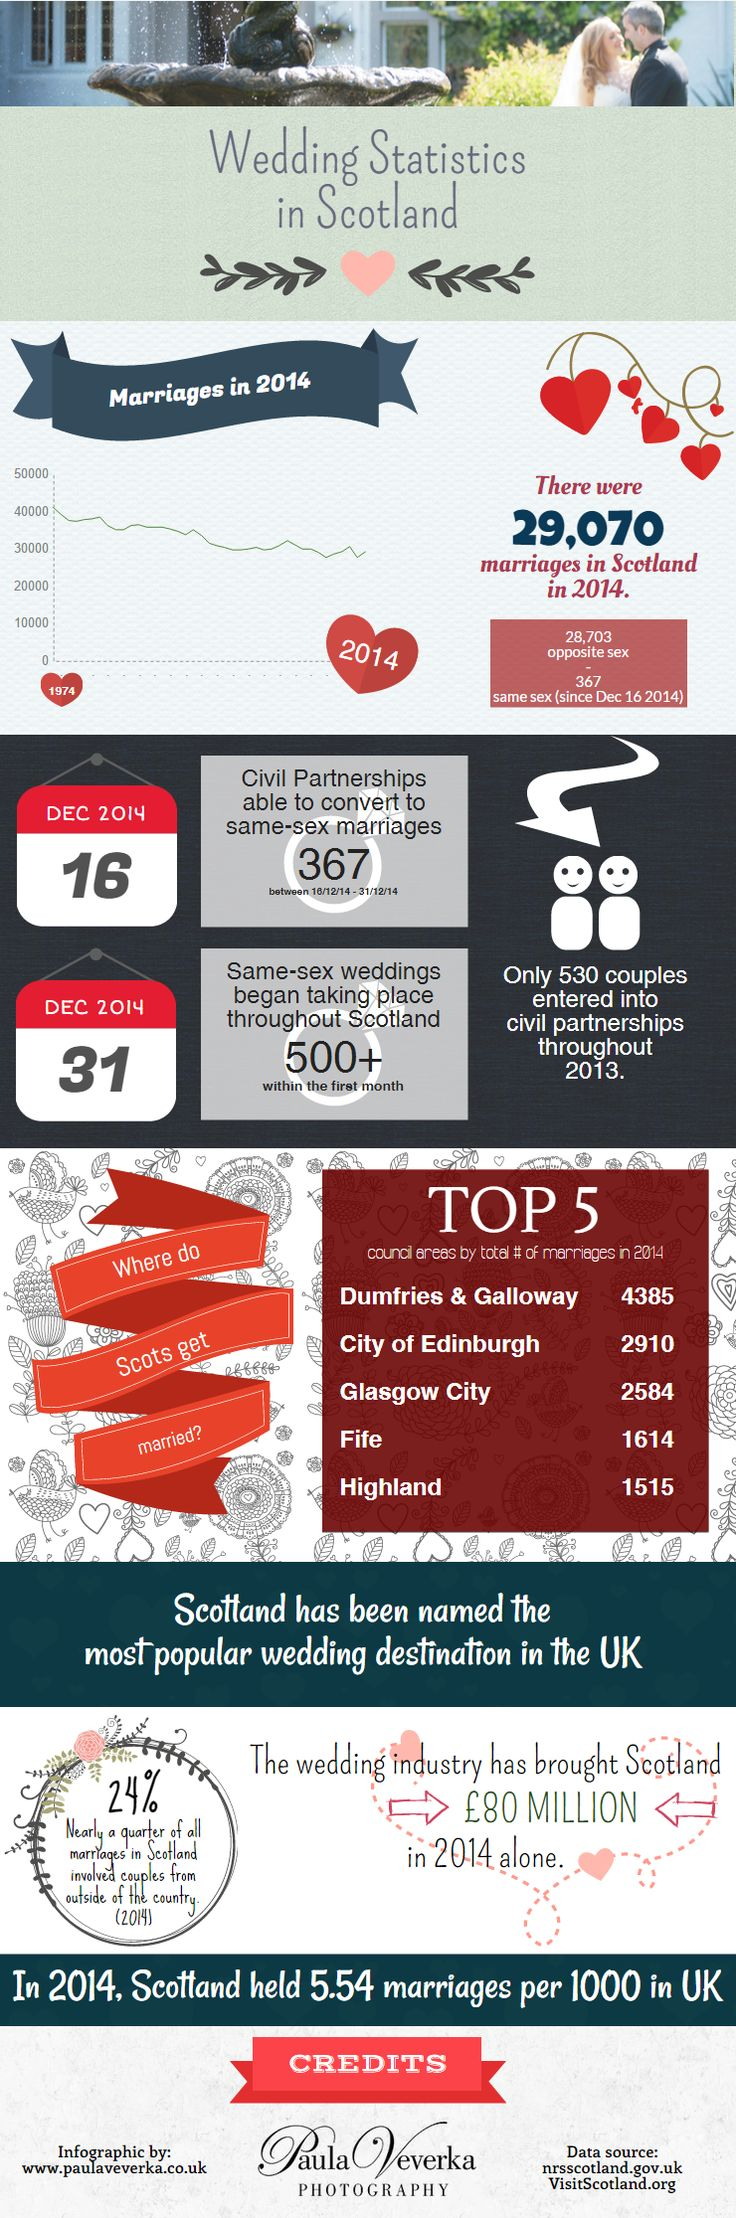 In this Wedding Statistics in Scotland infographic, we take a look at some of the wedding and marriage statistics for Scotland to find 2015 trends.  You can find a summary of the Scottish wedding numbers and statistics below the infographic for easy reference: http://www.paulaveverka.co.uk/blog/wedding/scotland-wedding-statistics-2015-infographic/